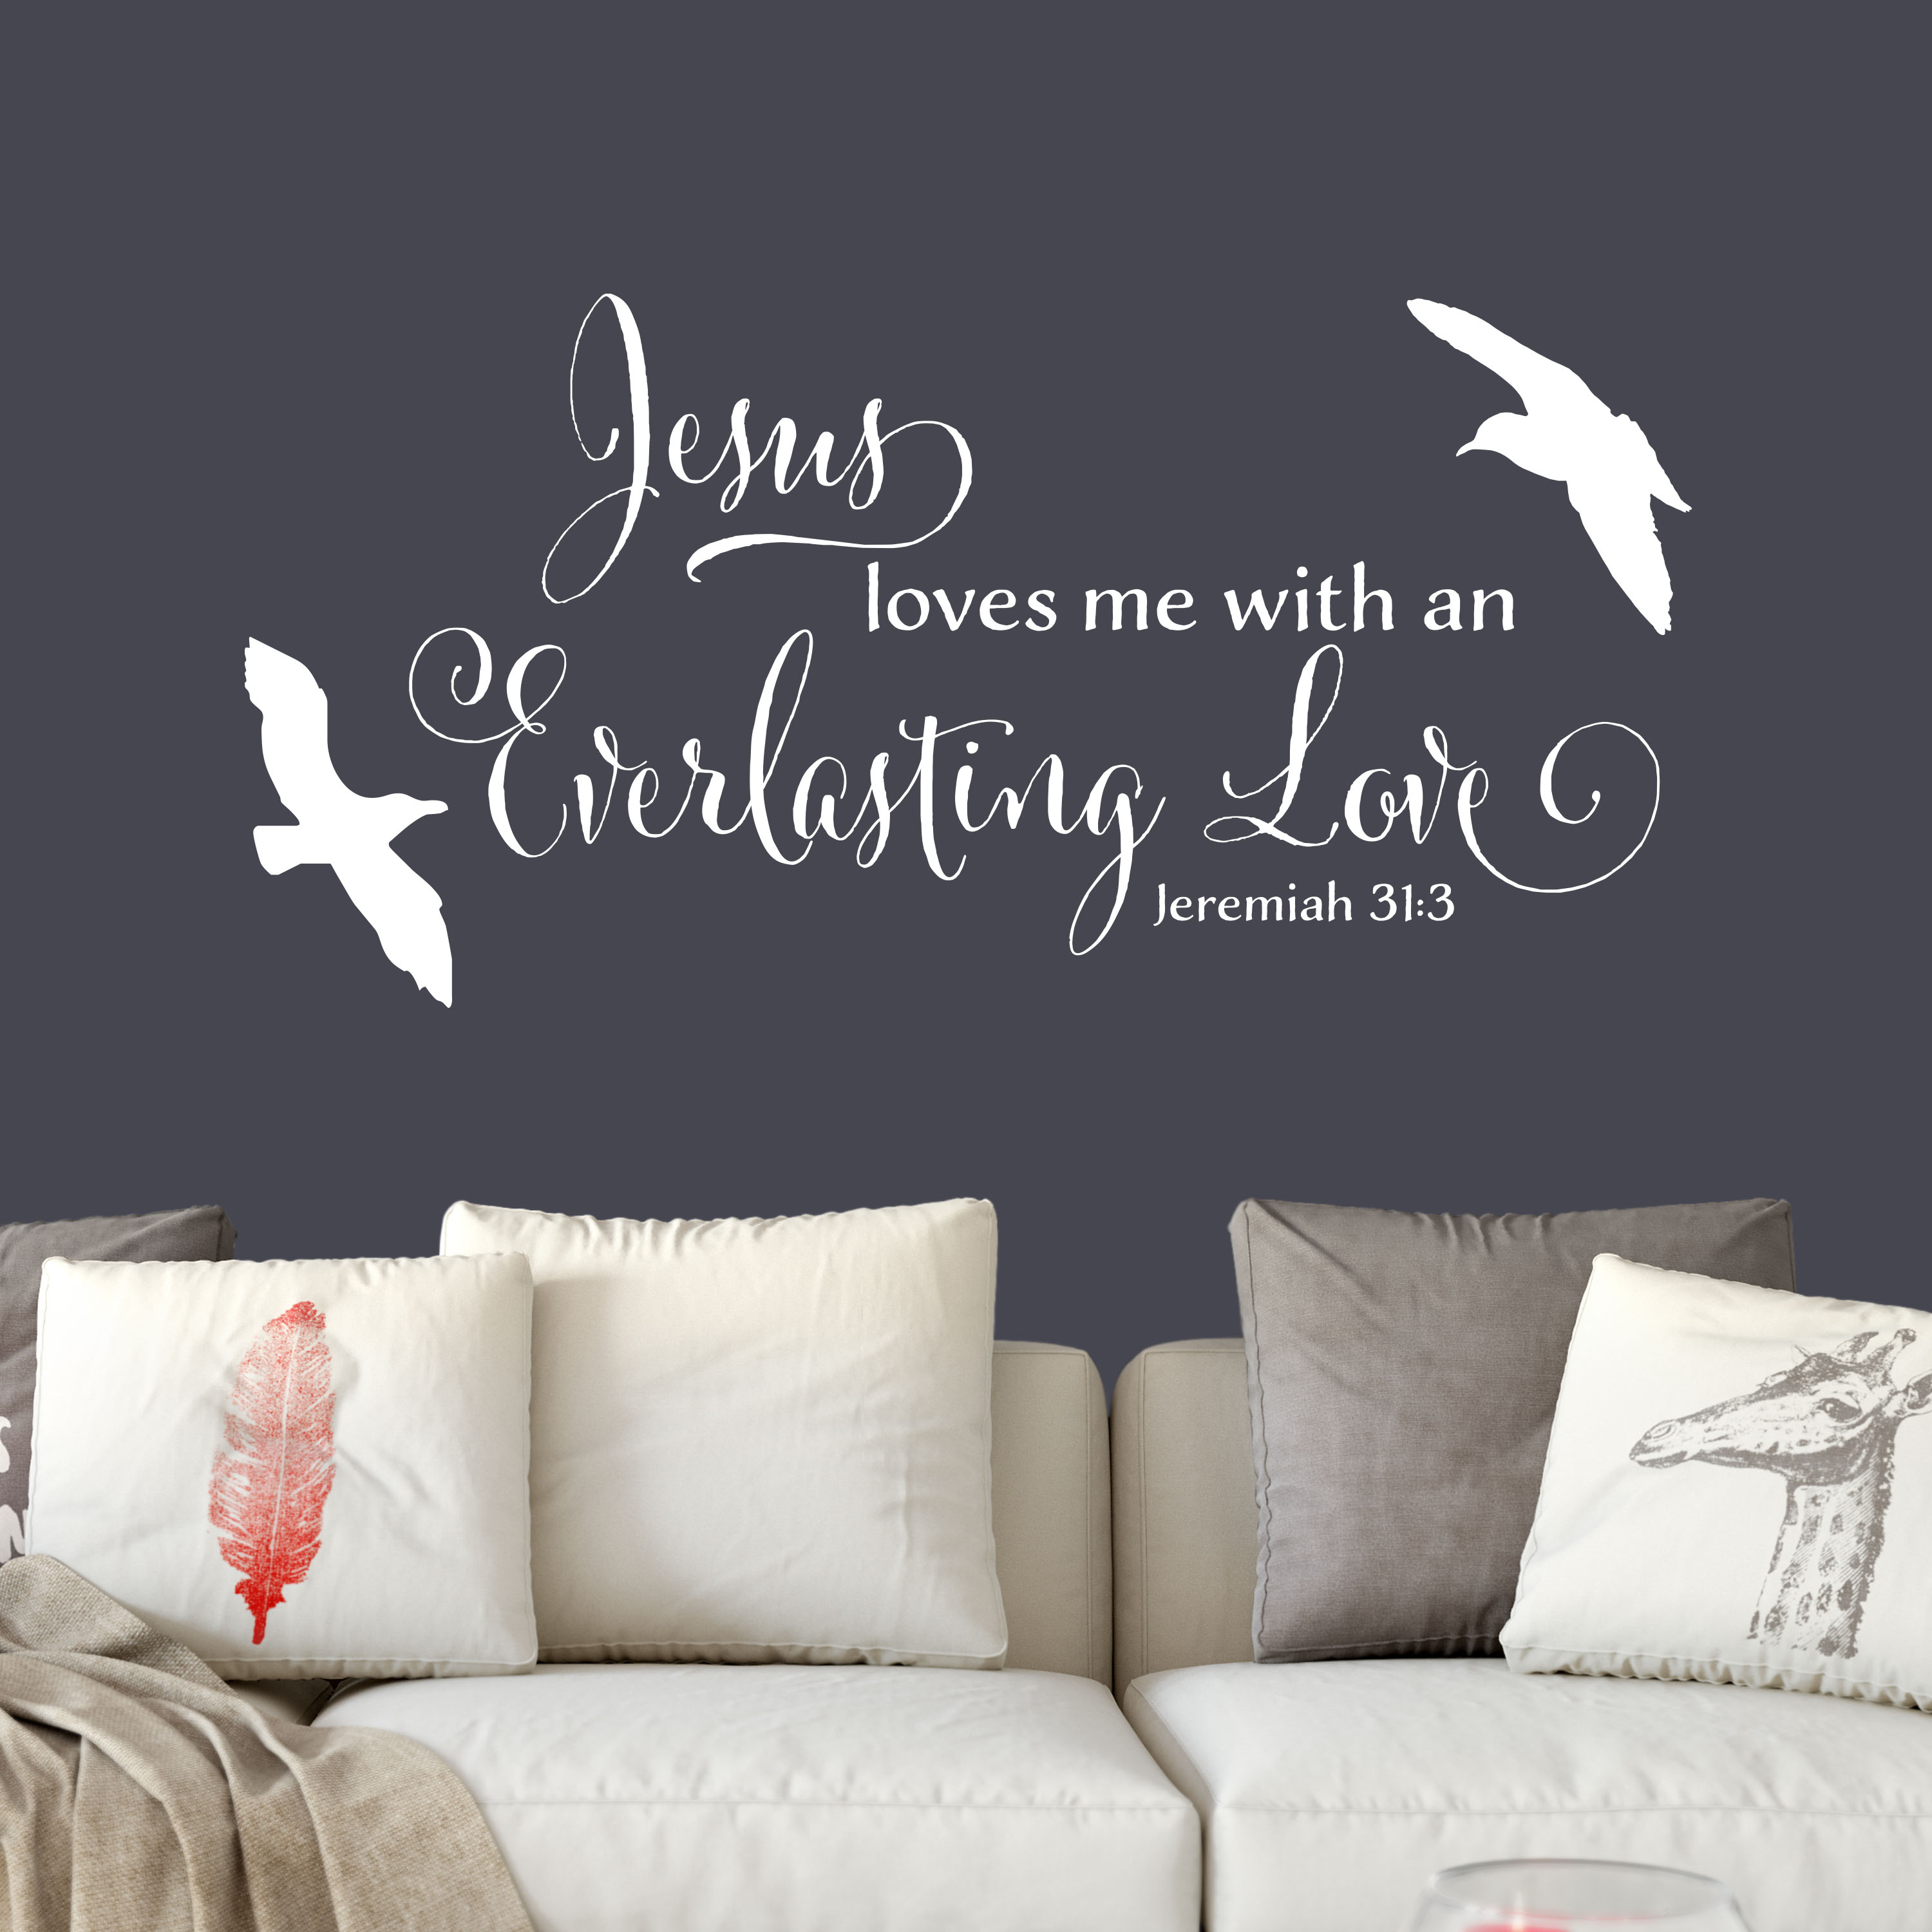 Jeremiah 31v3 Vinyl Wall Decal 1